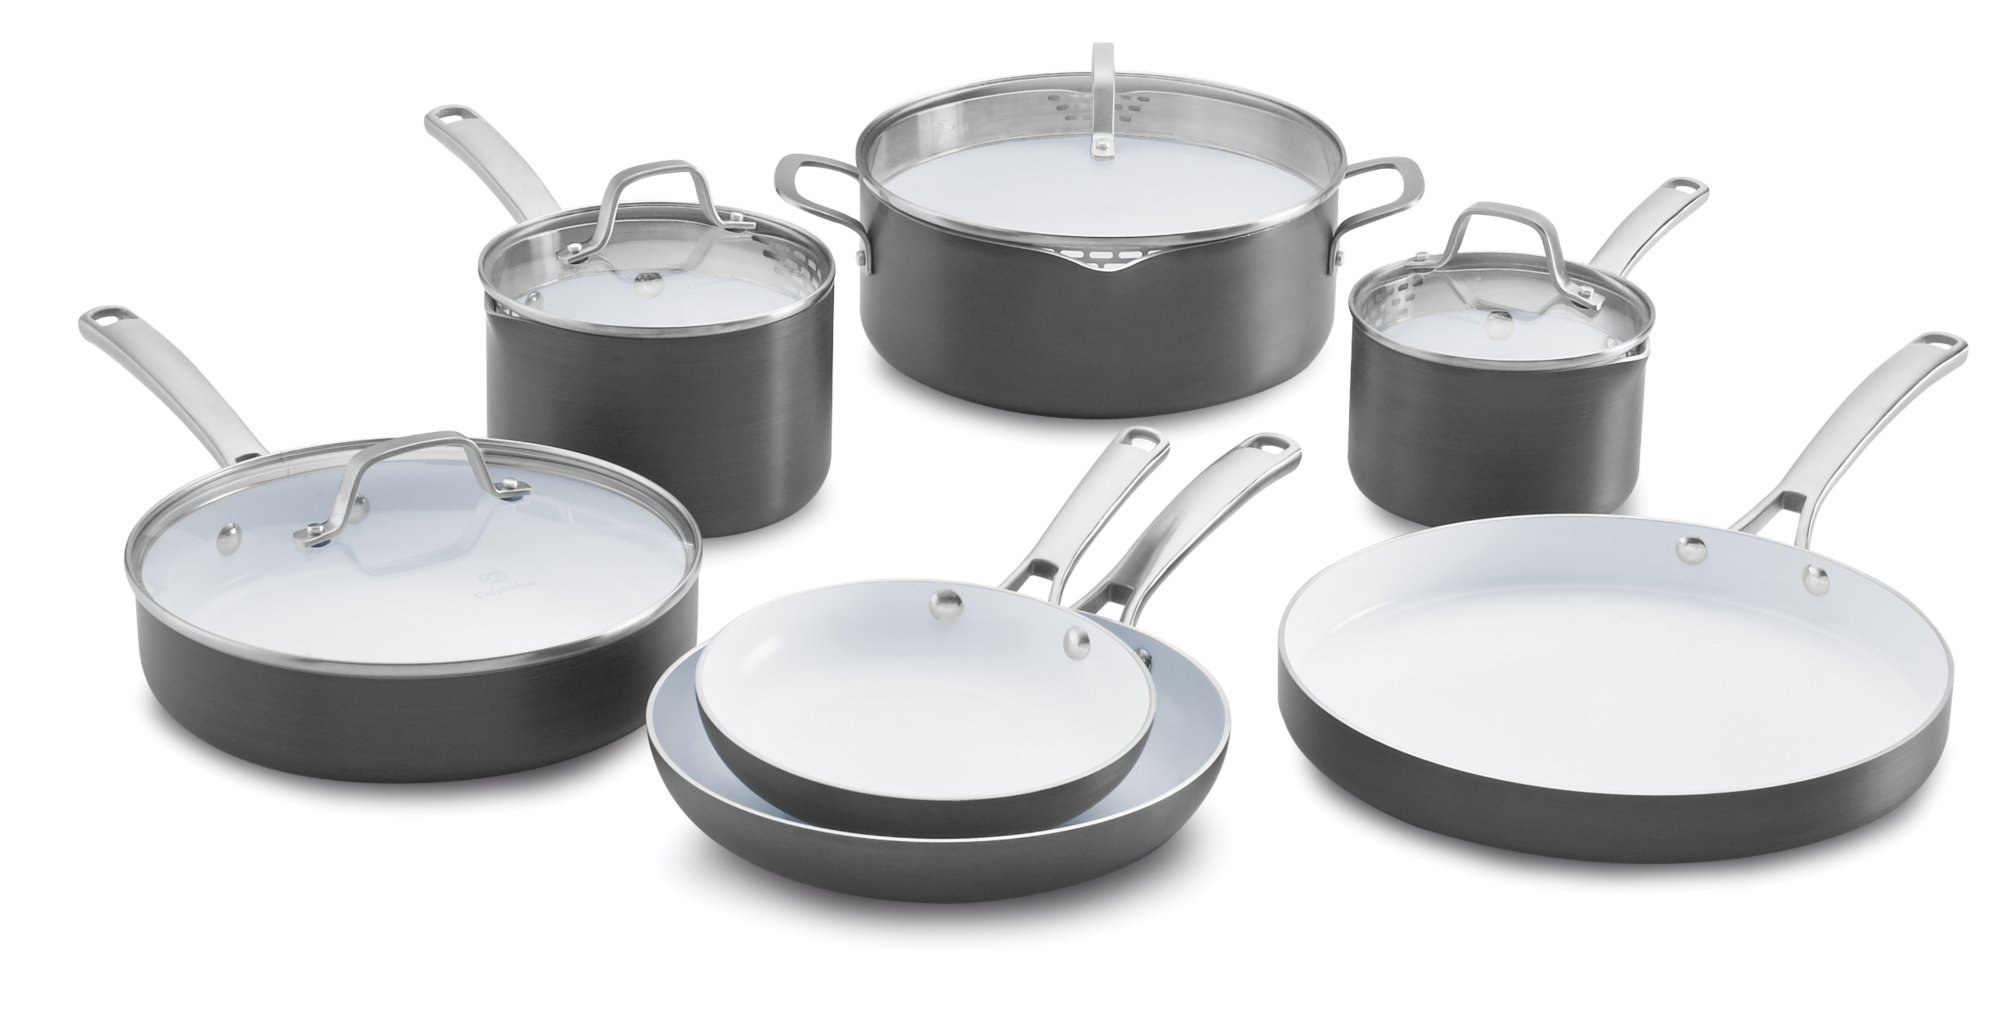 Cookware Comparison